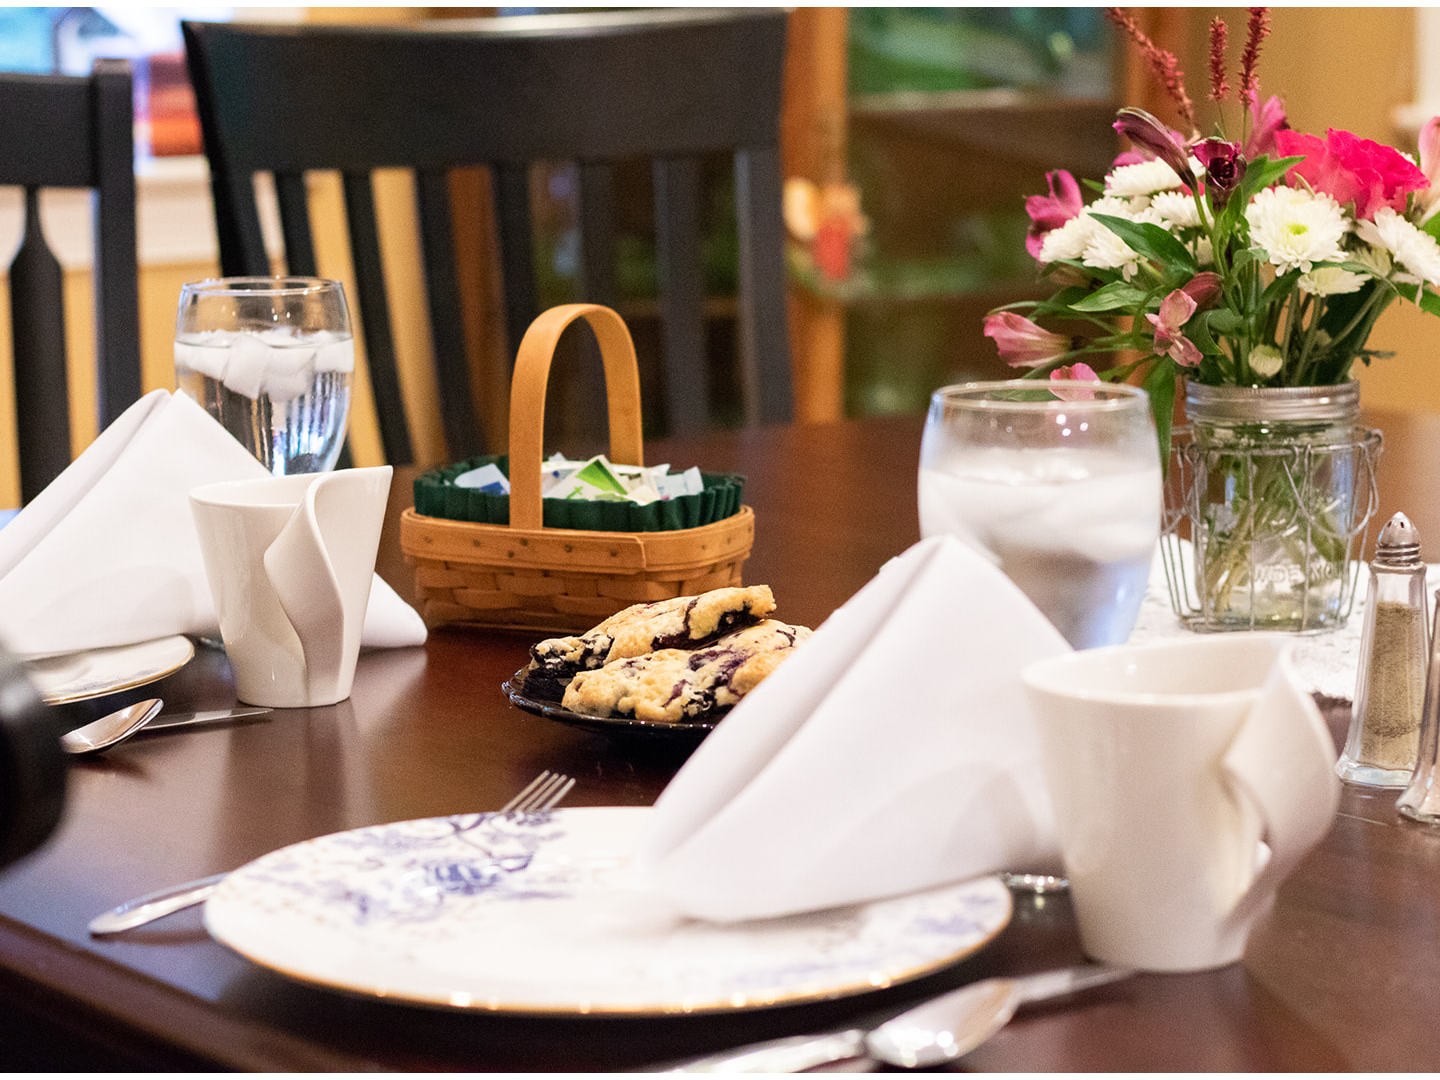 A cup of coffee and a vase of flowers on a table at Hammer Creek Hideaway Bed & Breakfast.